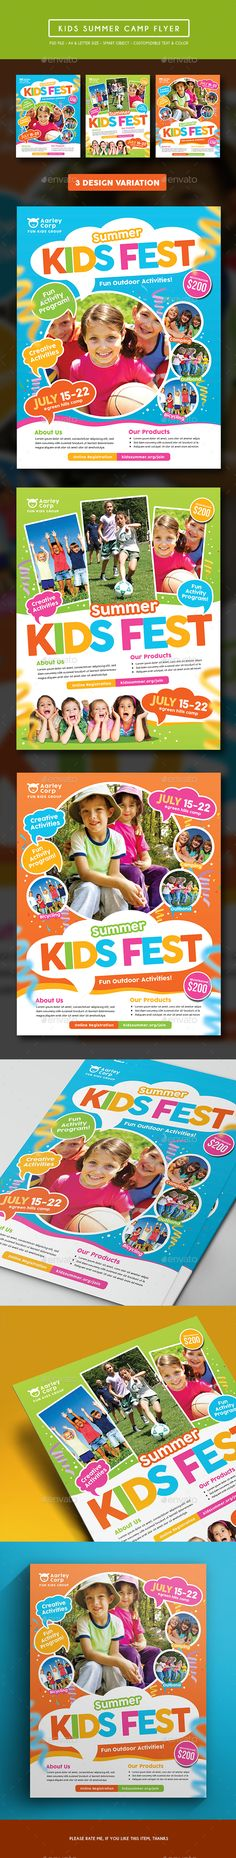 "Kids Summer Camp Flyer - Corporate Flyers.Download here: <a href=""http://graphicriver.net/item/kids-summer-camp-flyer-/15249803?ref=arroganttype"" rel=""nofollow"" target=""_blank"">graphicriver.net/...</a>"